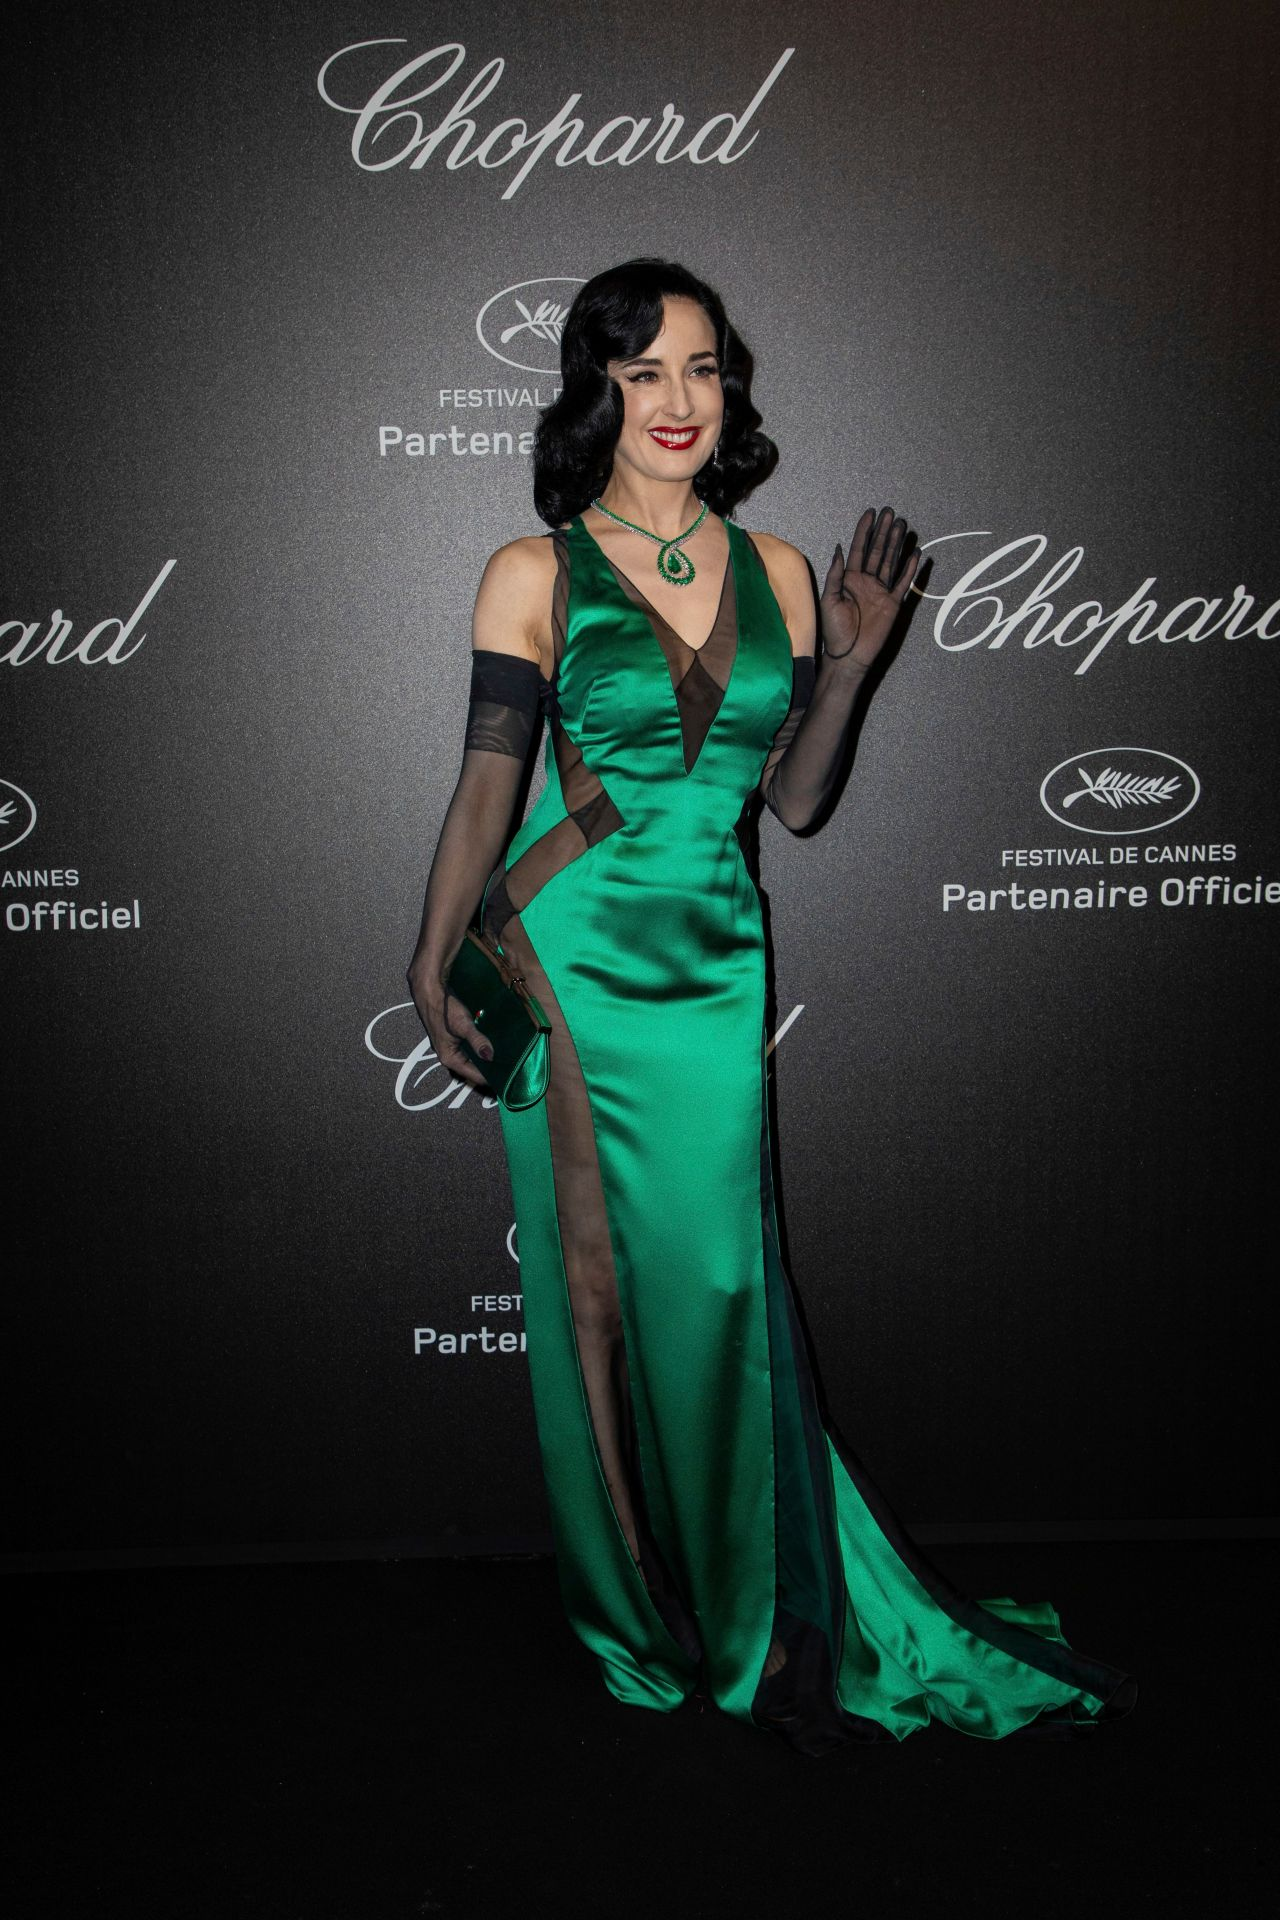 https://celebmafia.com/wp-content/uploads/2019/05/dita-von-teese-chopard-party-at-the-72nd-cannes-film-festival-5.jpg